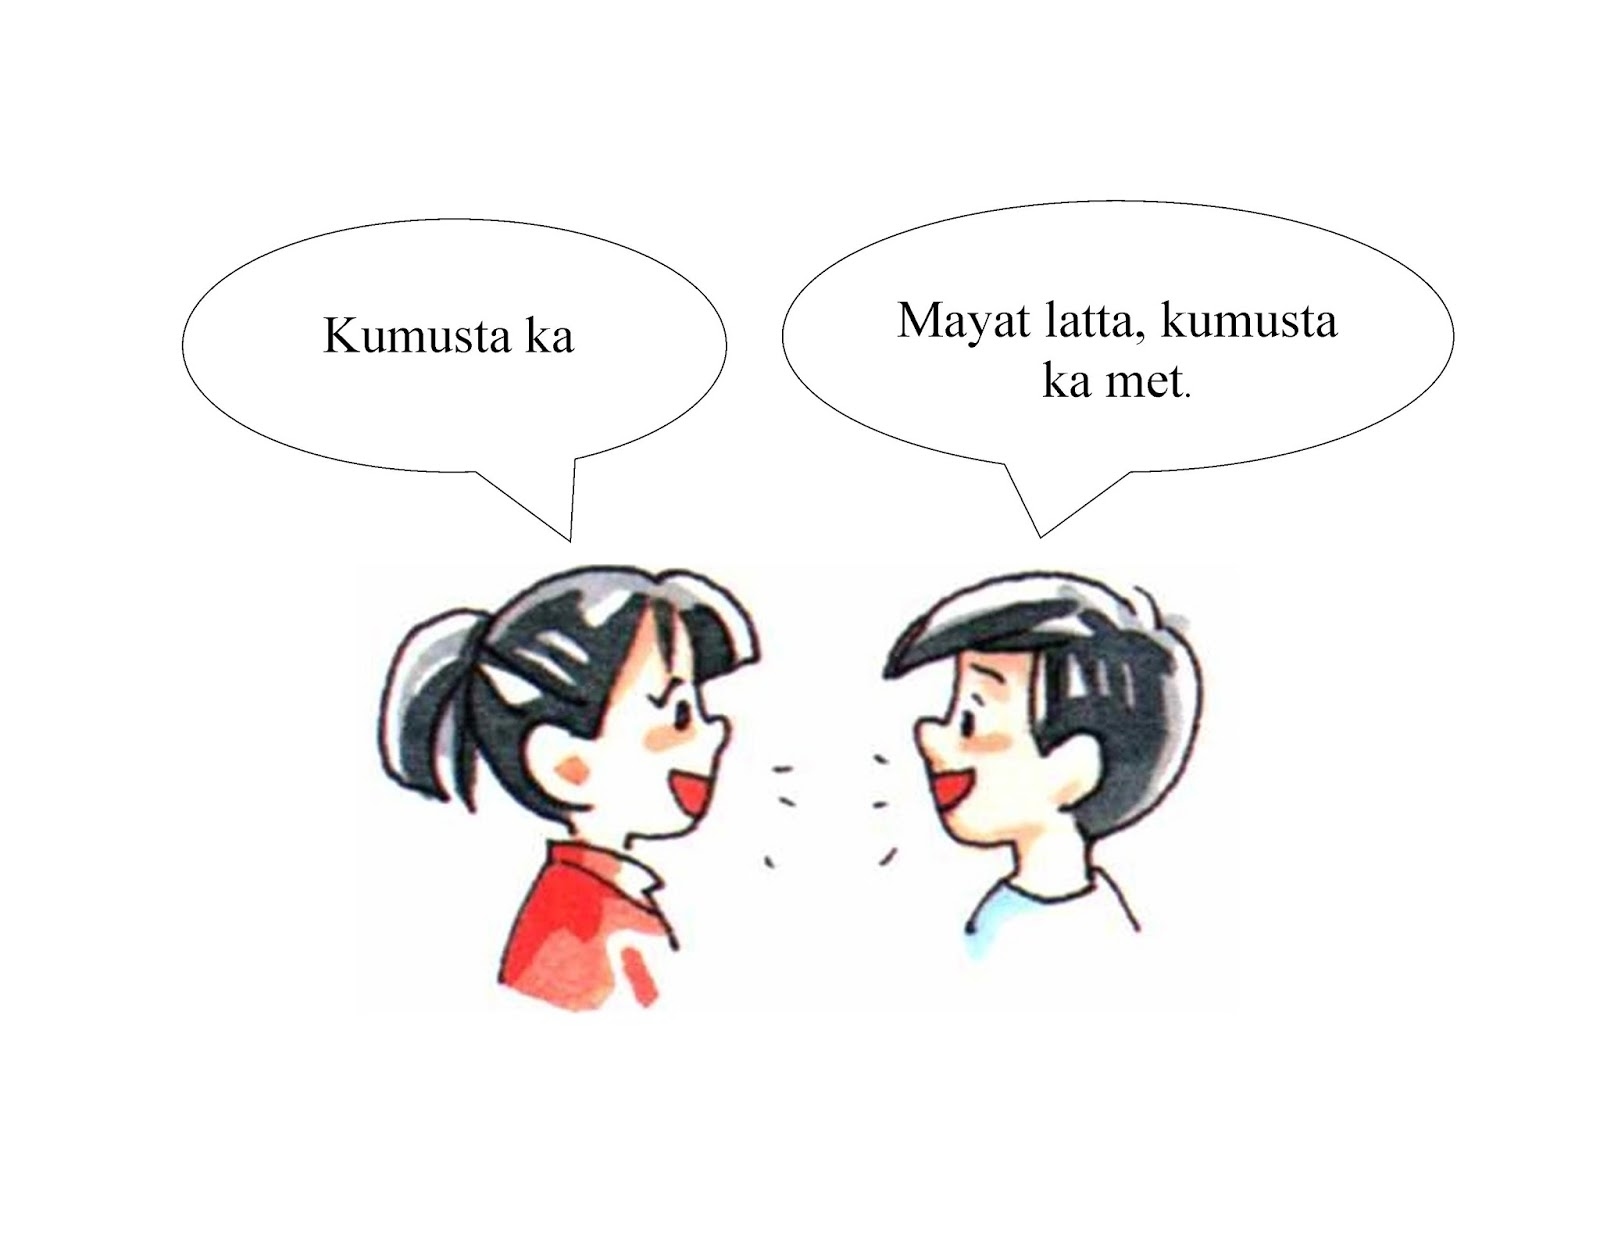 Greeting in ilokano basics part 2 ilokano learner learning to greet people is a great start to practice your ilokano its also one of the first things you should learn in any language kristyandbryce Gallery